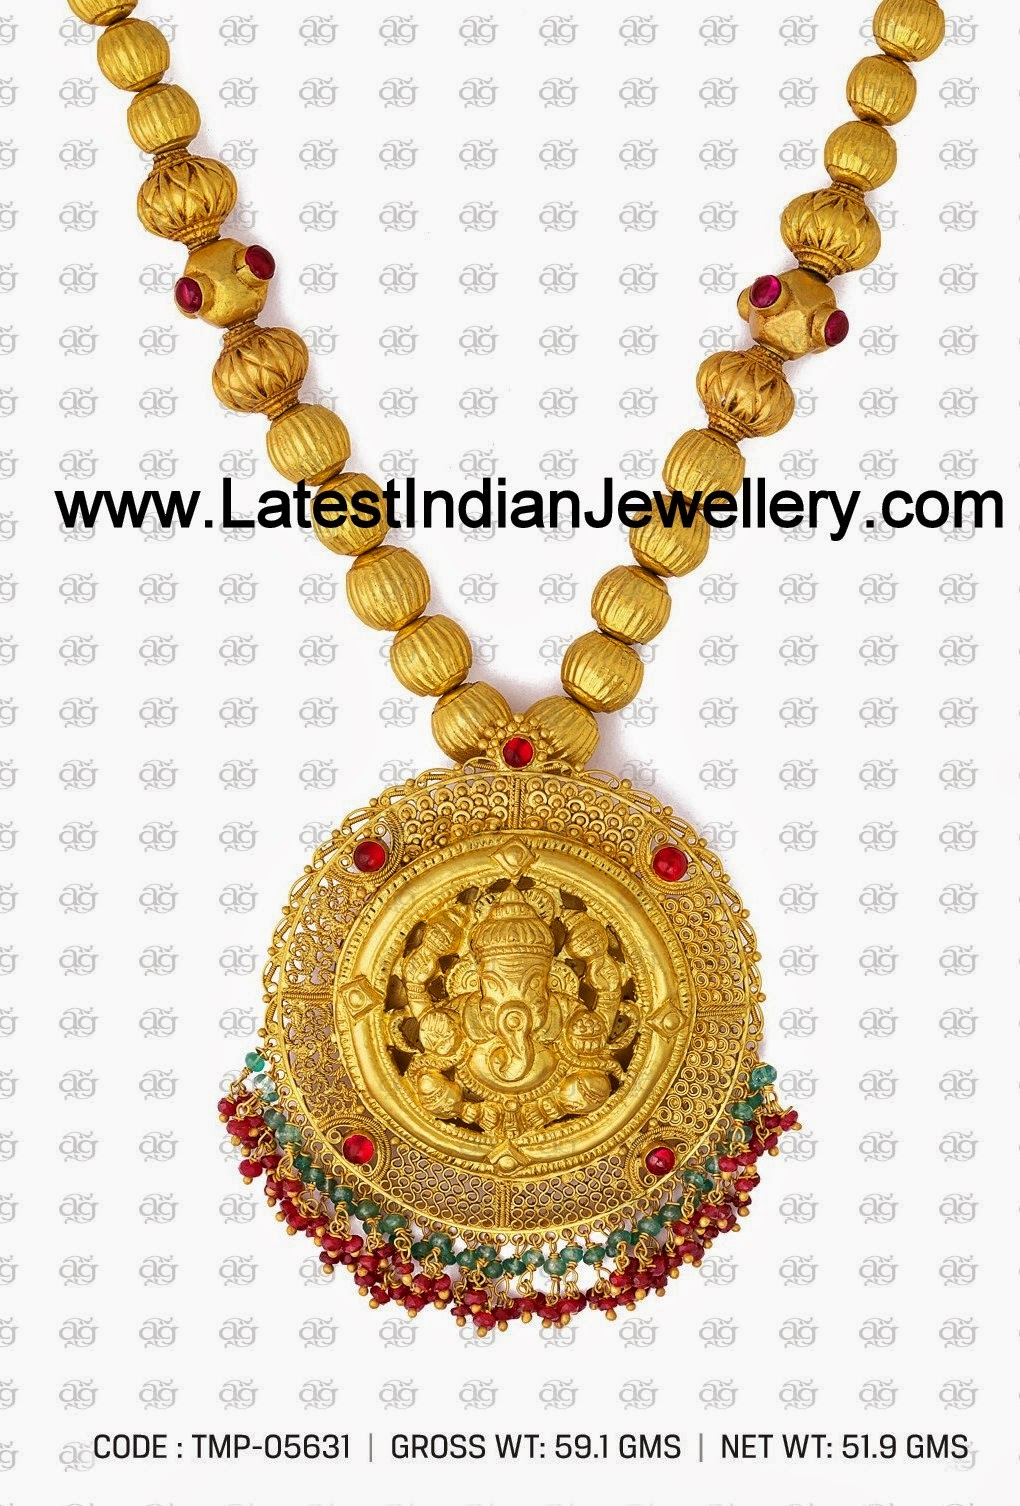 Indian Temple Jewellery Designs